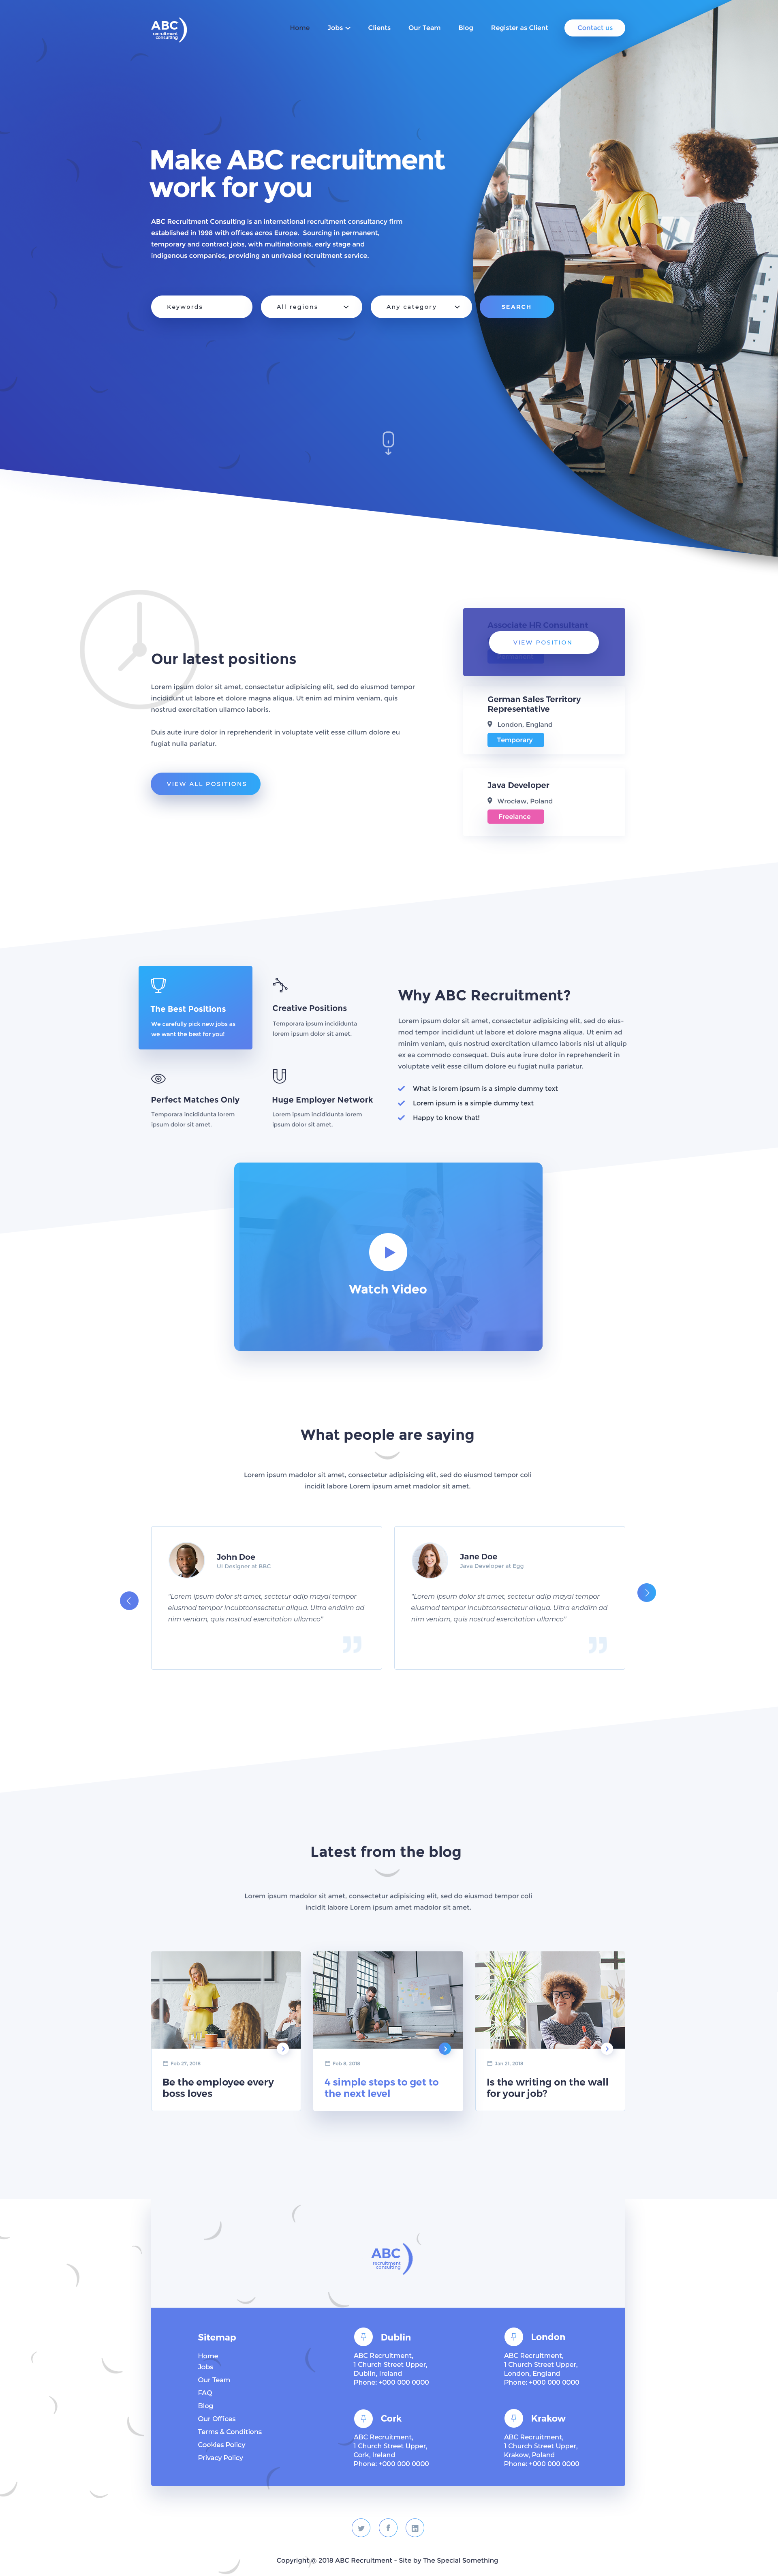 Recruitment Agency Design Concept 4 Full Design Recruitment Website Design Design Agency Web App Design